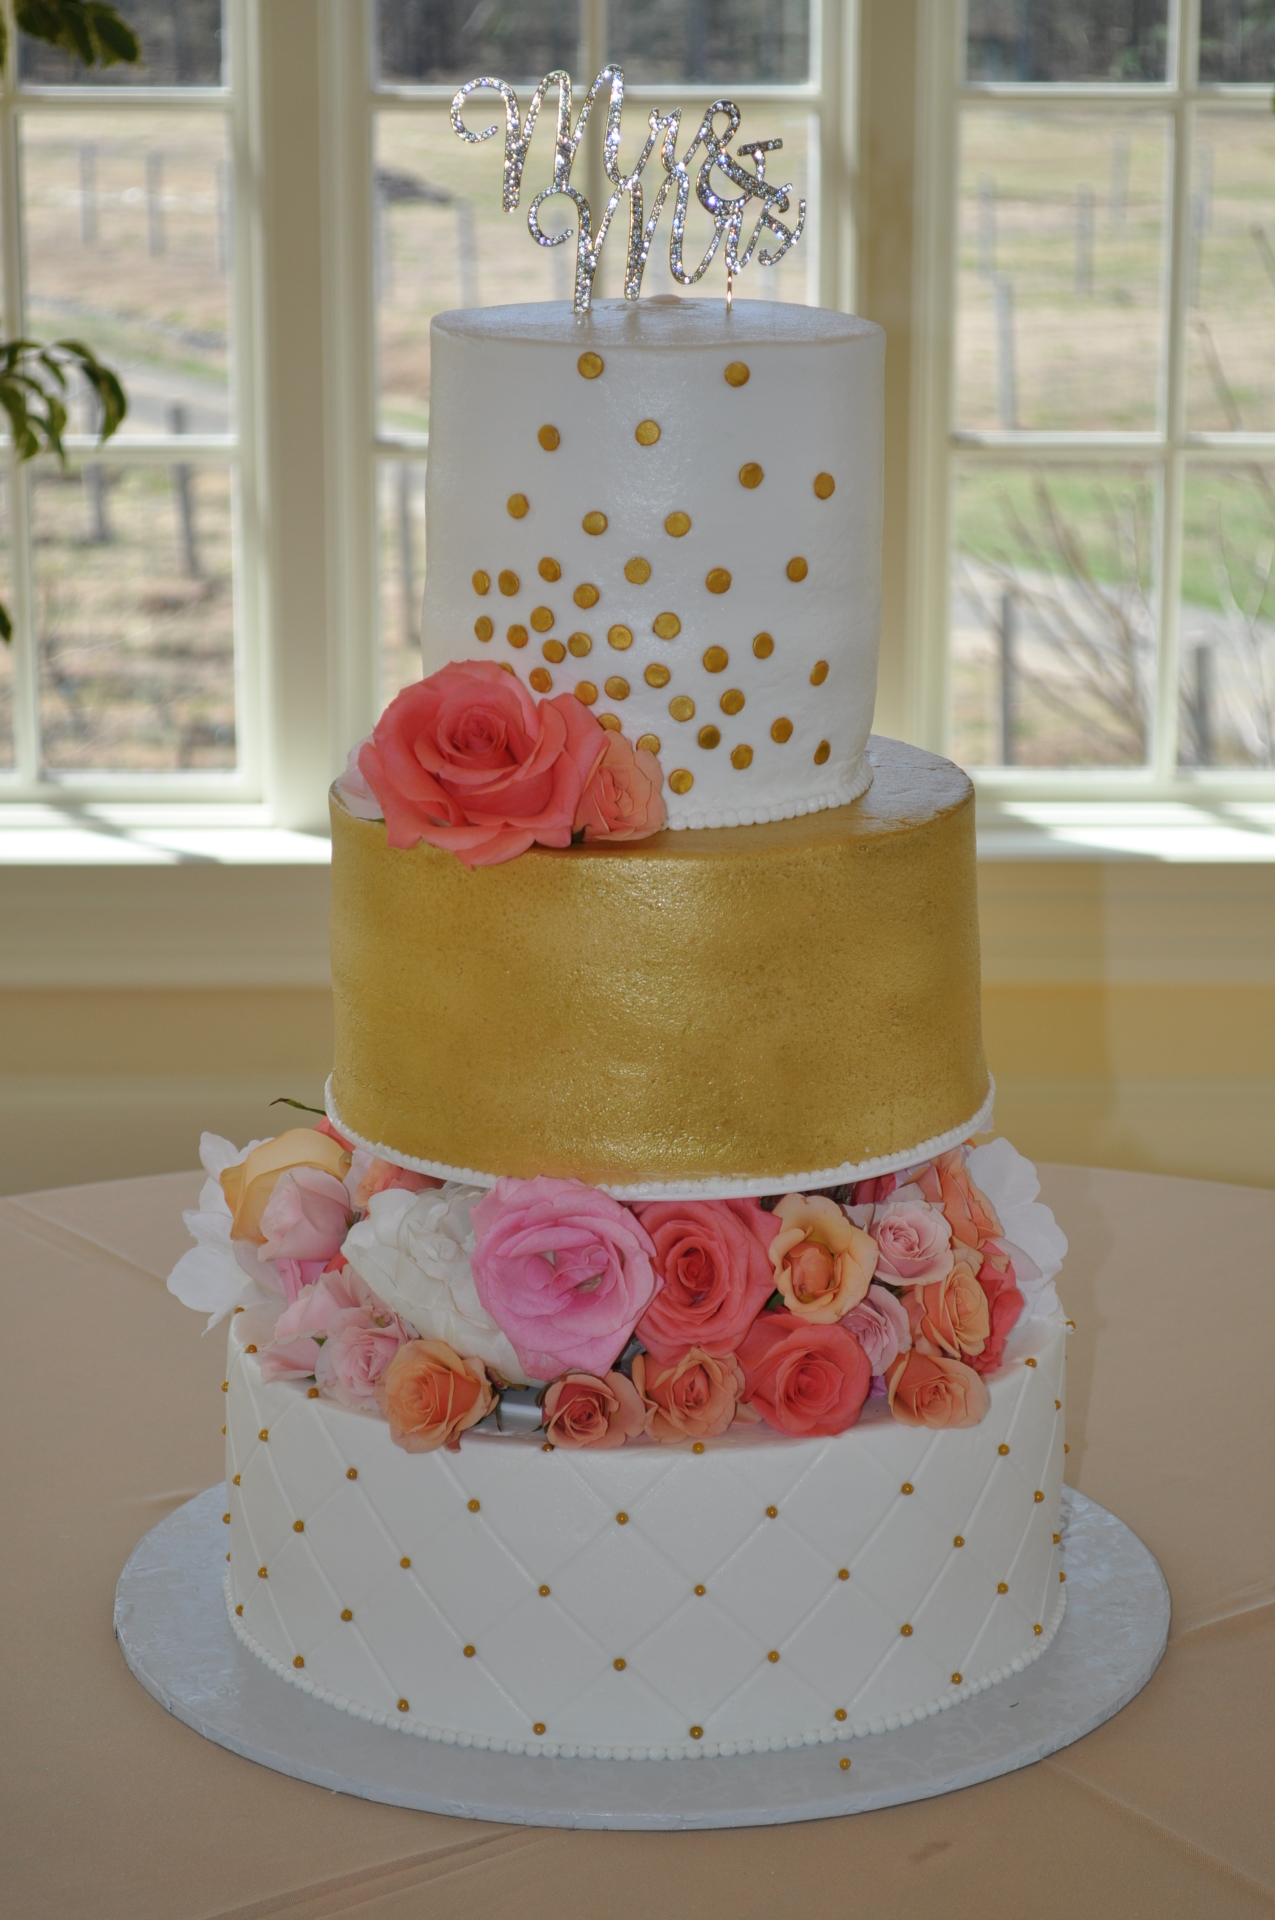 Gold and white tiers with flower spacers